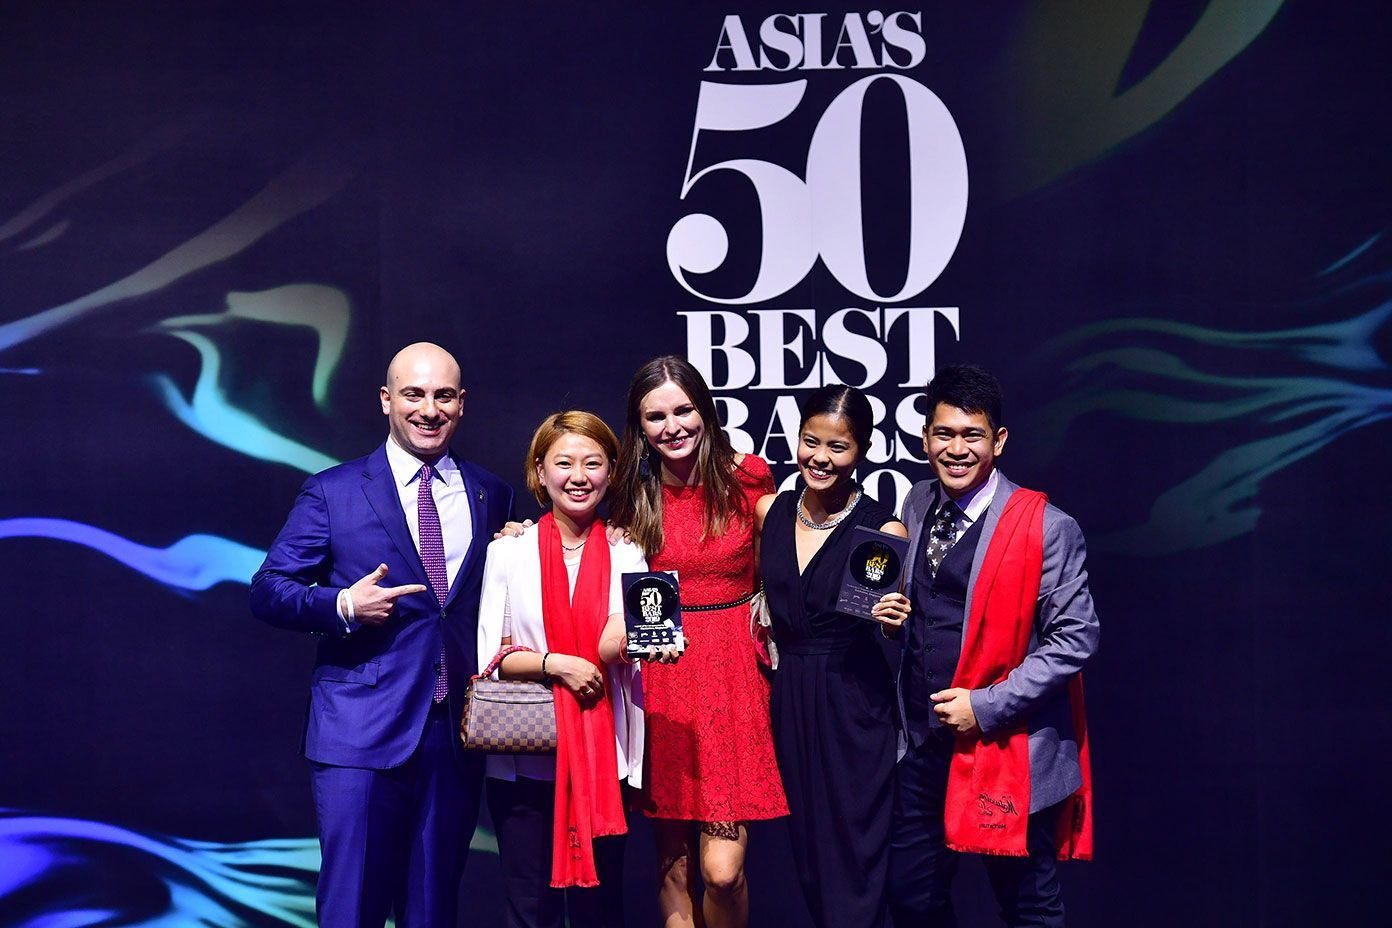 Asia's 50 Best Bars 2020 Cancels On-Site Ceremony in Singapore